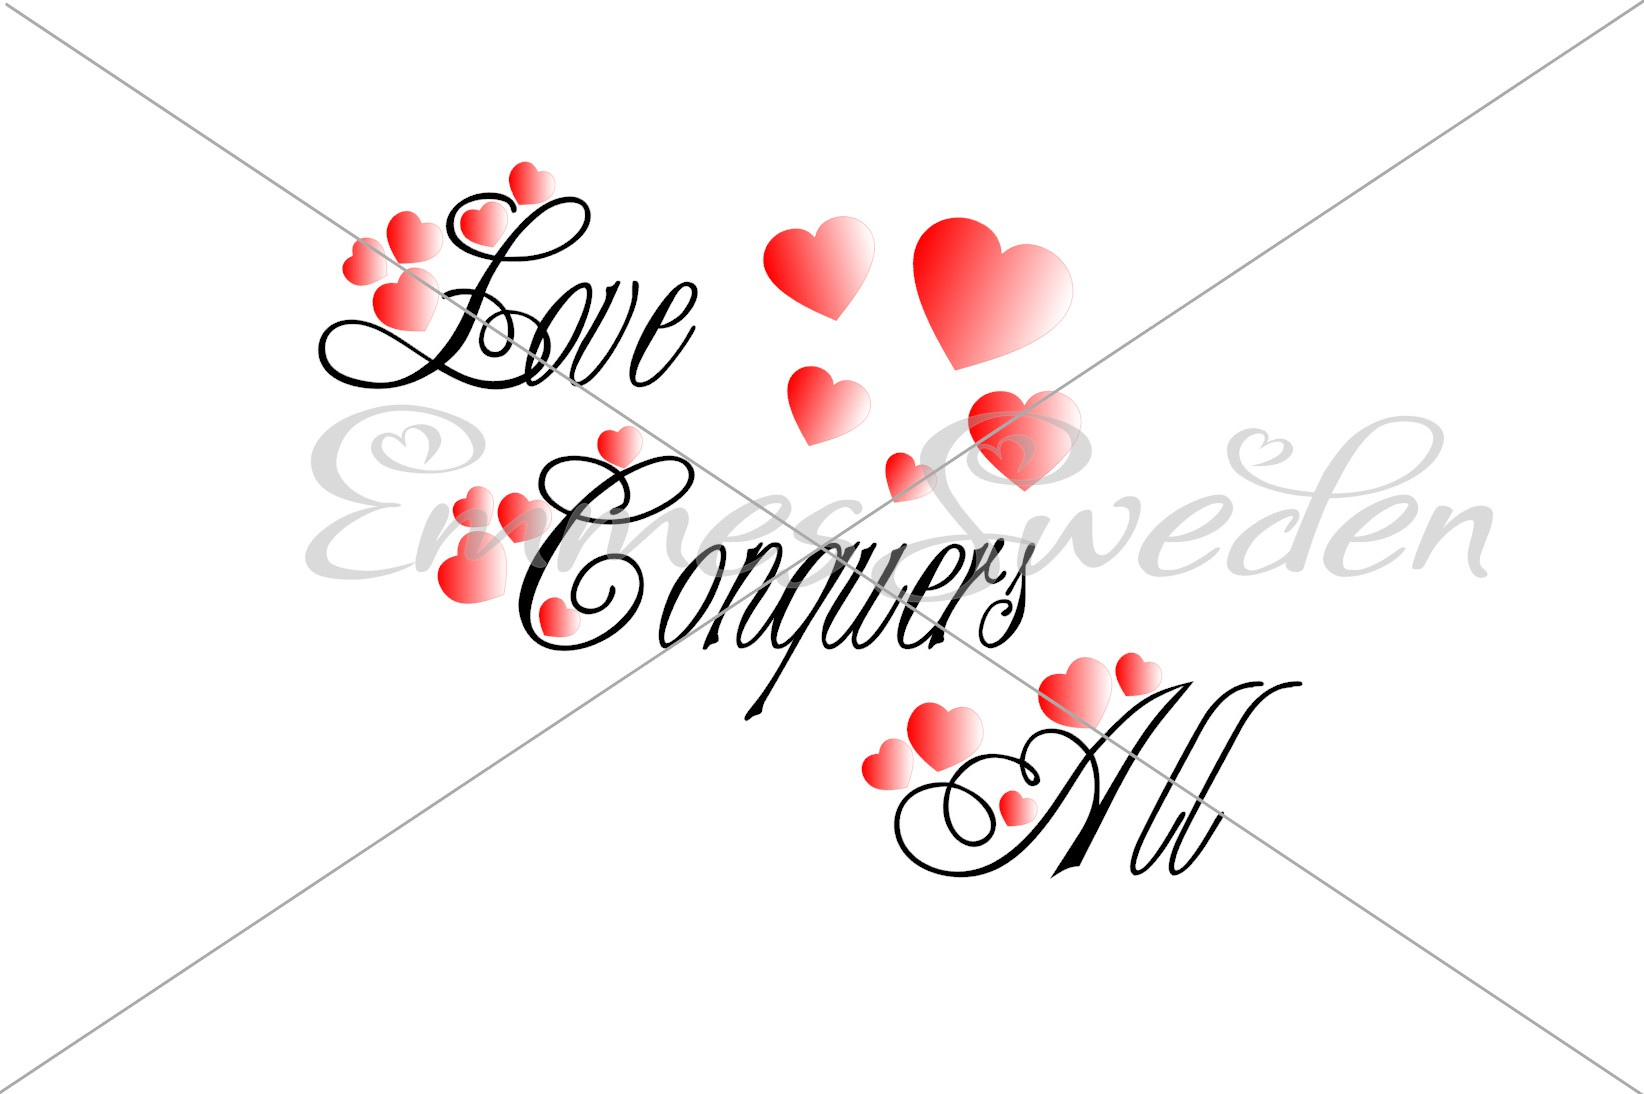 Download Free Love Conquers All Svg Heart Svg Graphic By Emmessweden for Cricut Explore, Silhouette and other cutting machines.